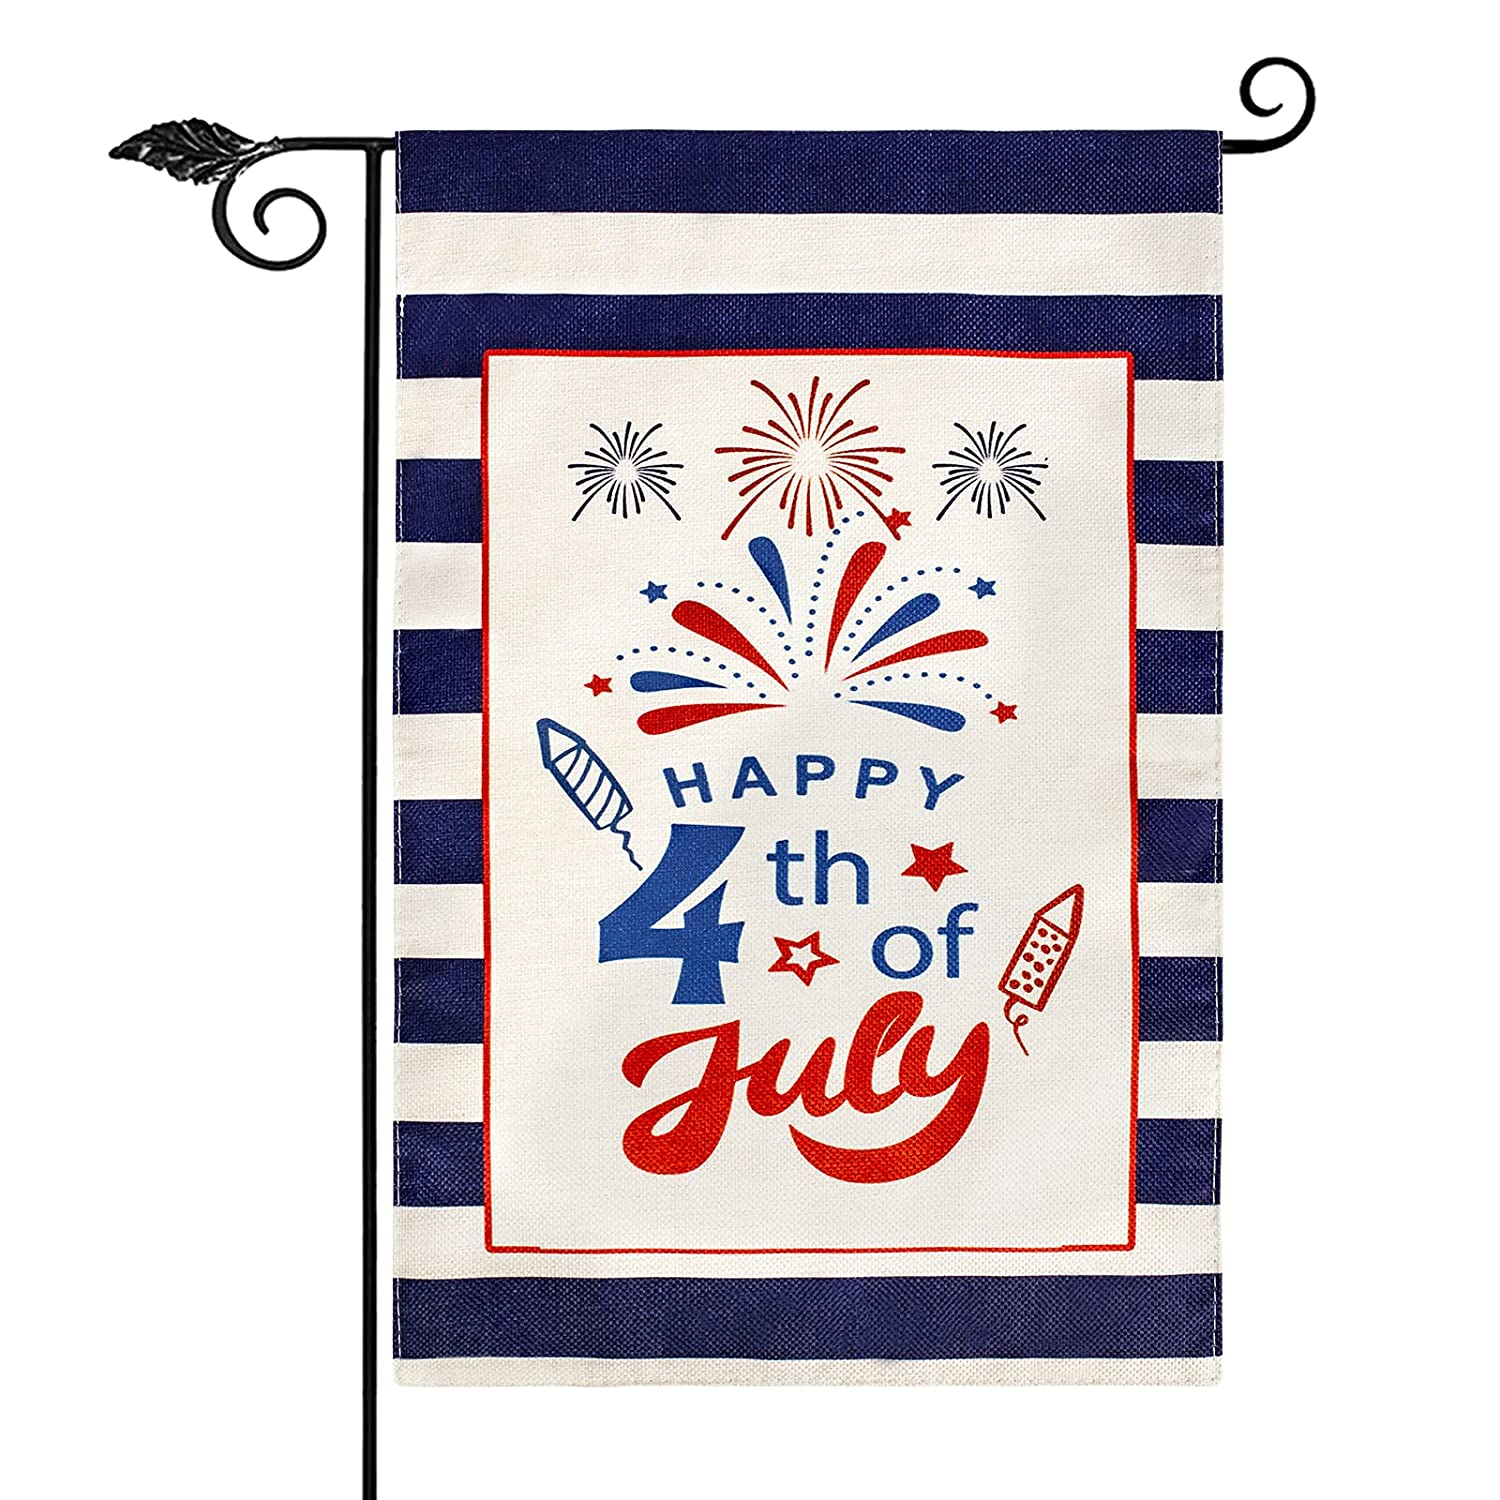 Unves Happy 4th of July Garden Flags 12.5X18, Double Sided Blue Strips Patriotic Garden Flag, Fourth of July Flag Independence Day Memorial Yard Outdoor Decoration